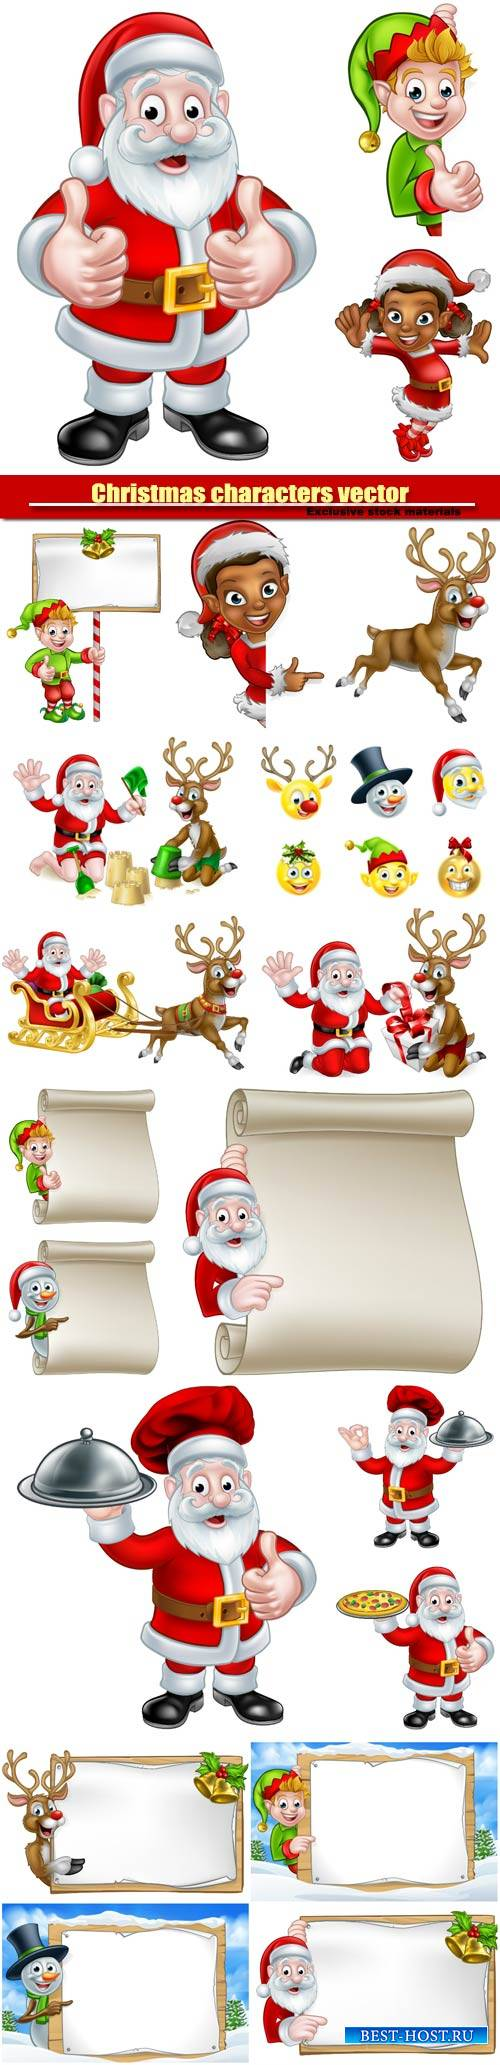 Christmas characters vector, Santa and elves